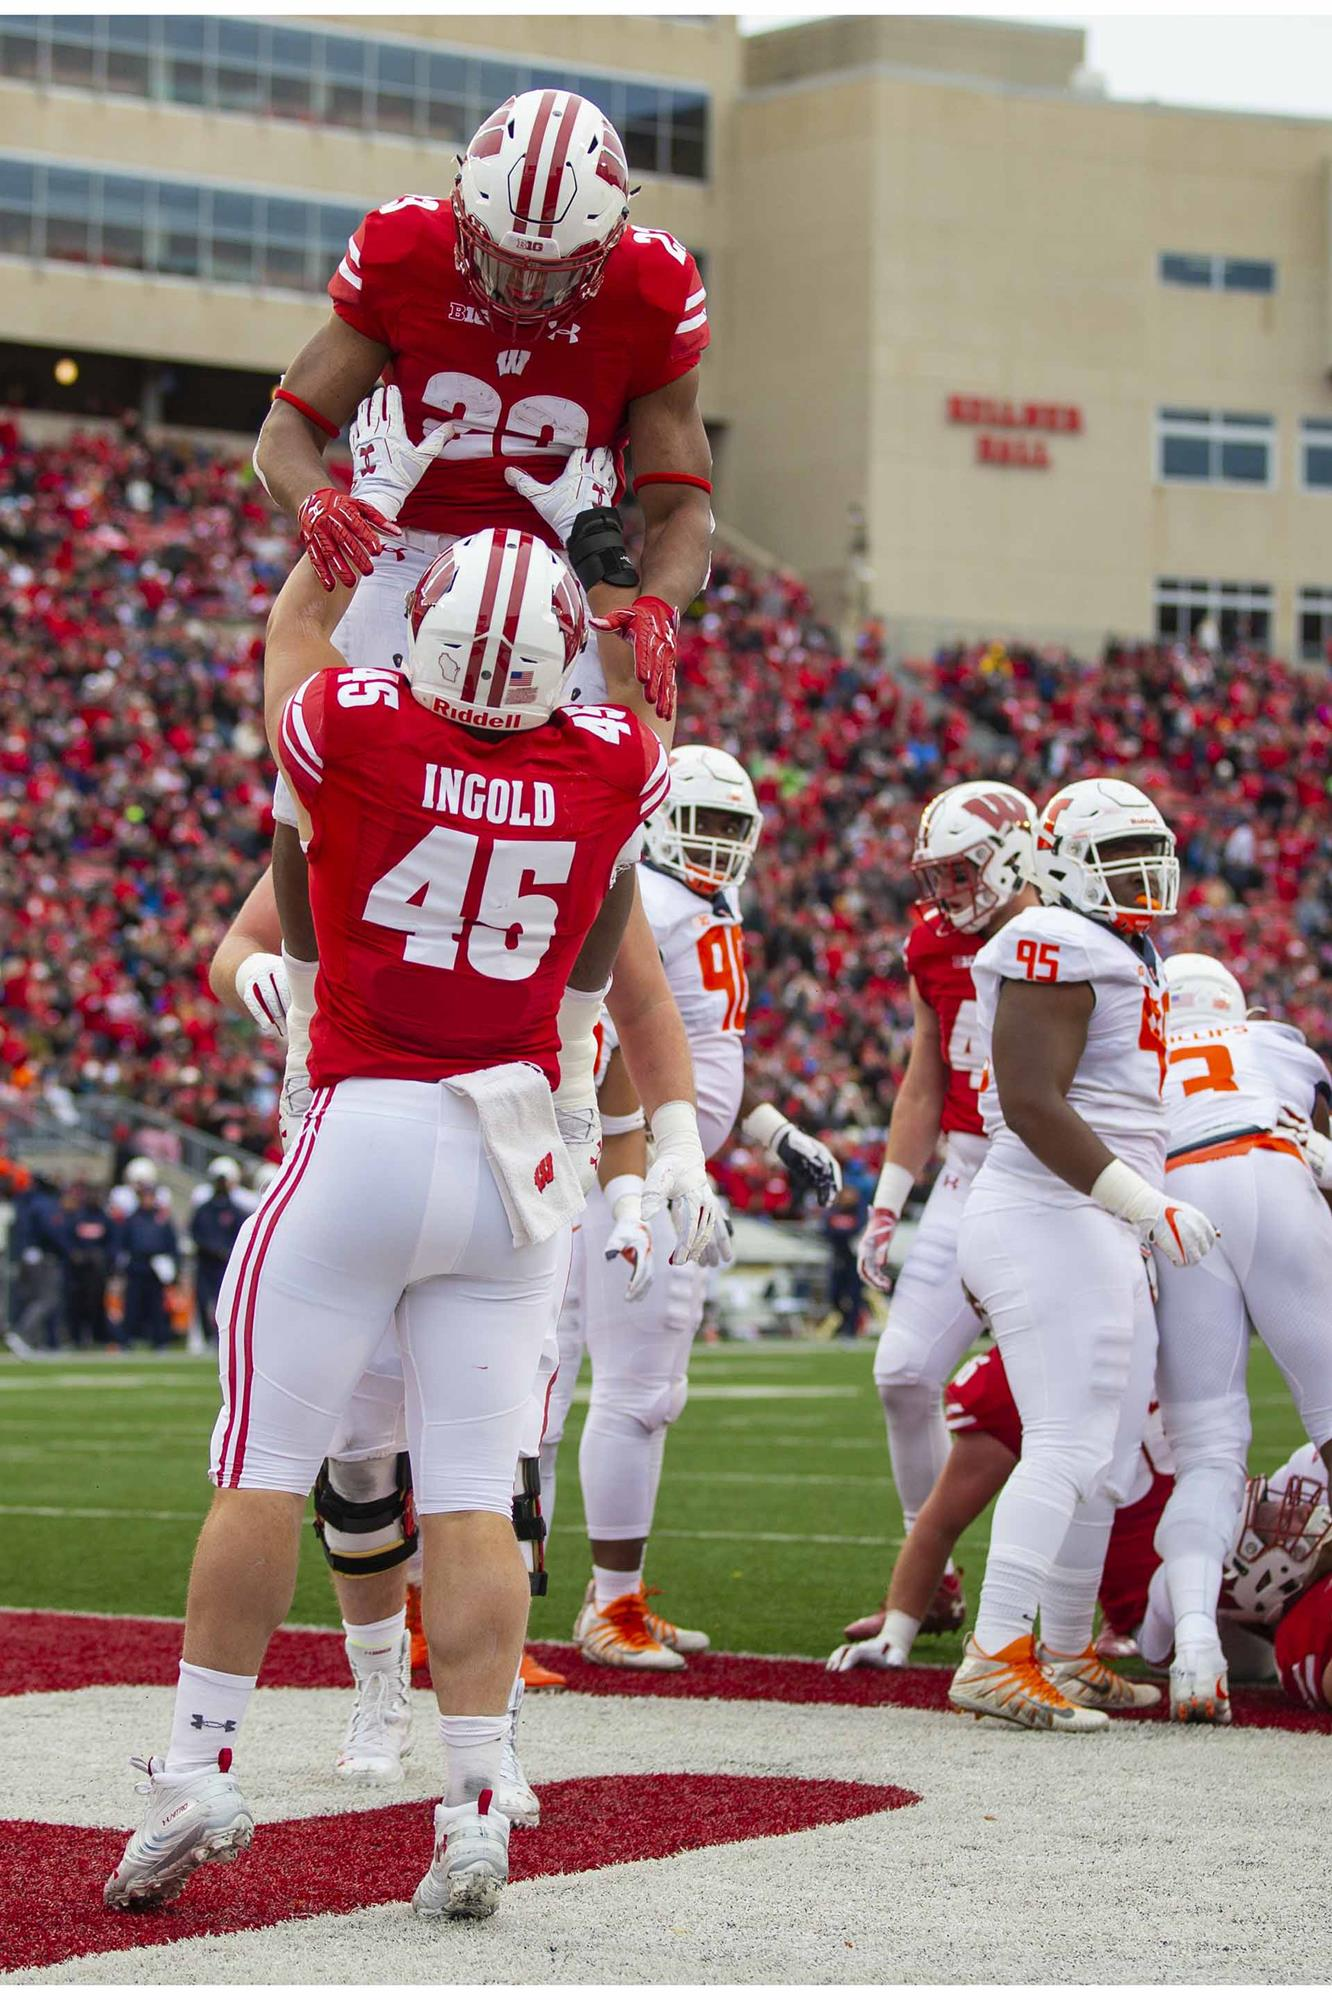 Alec Ingold | Football | Wisconsin Athletics